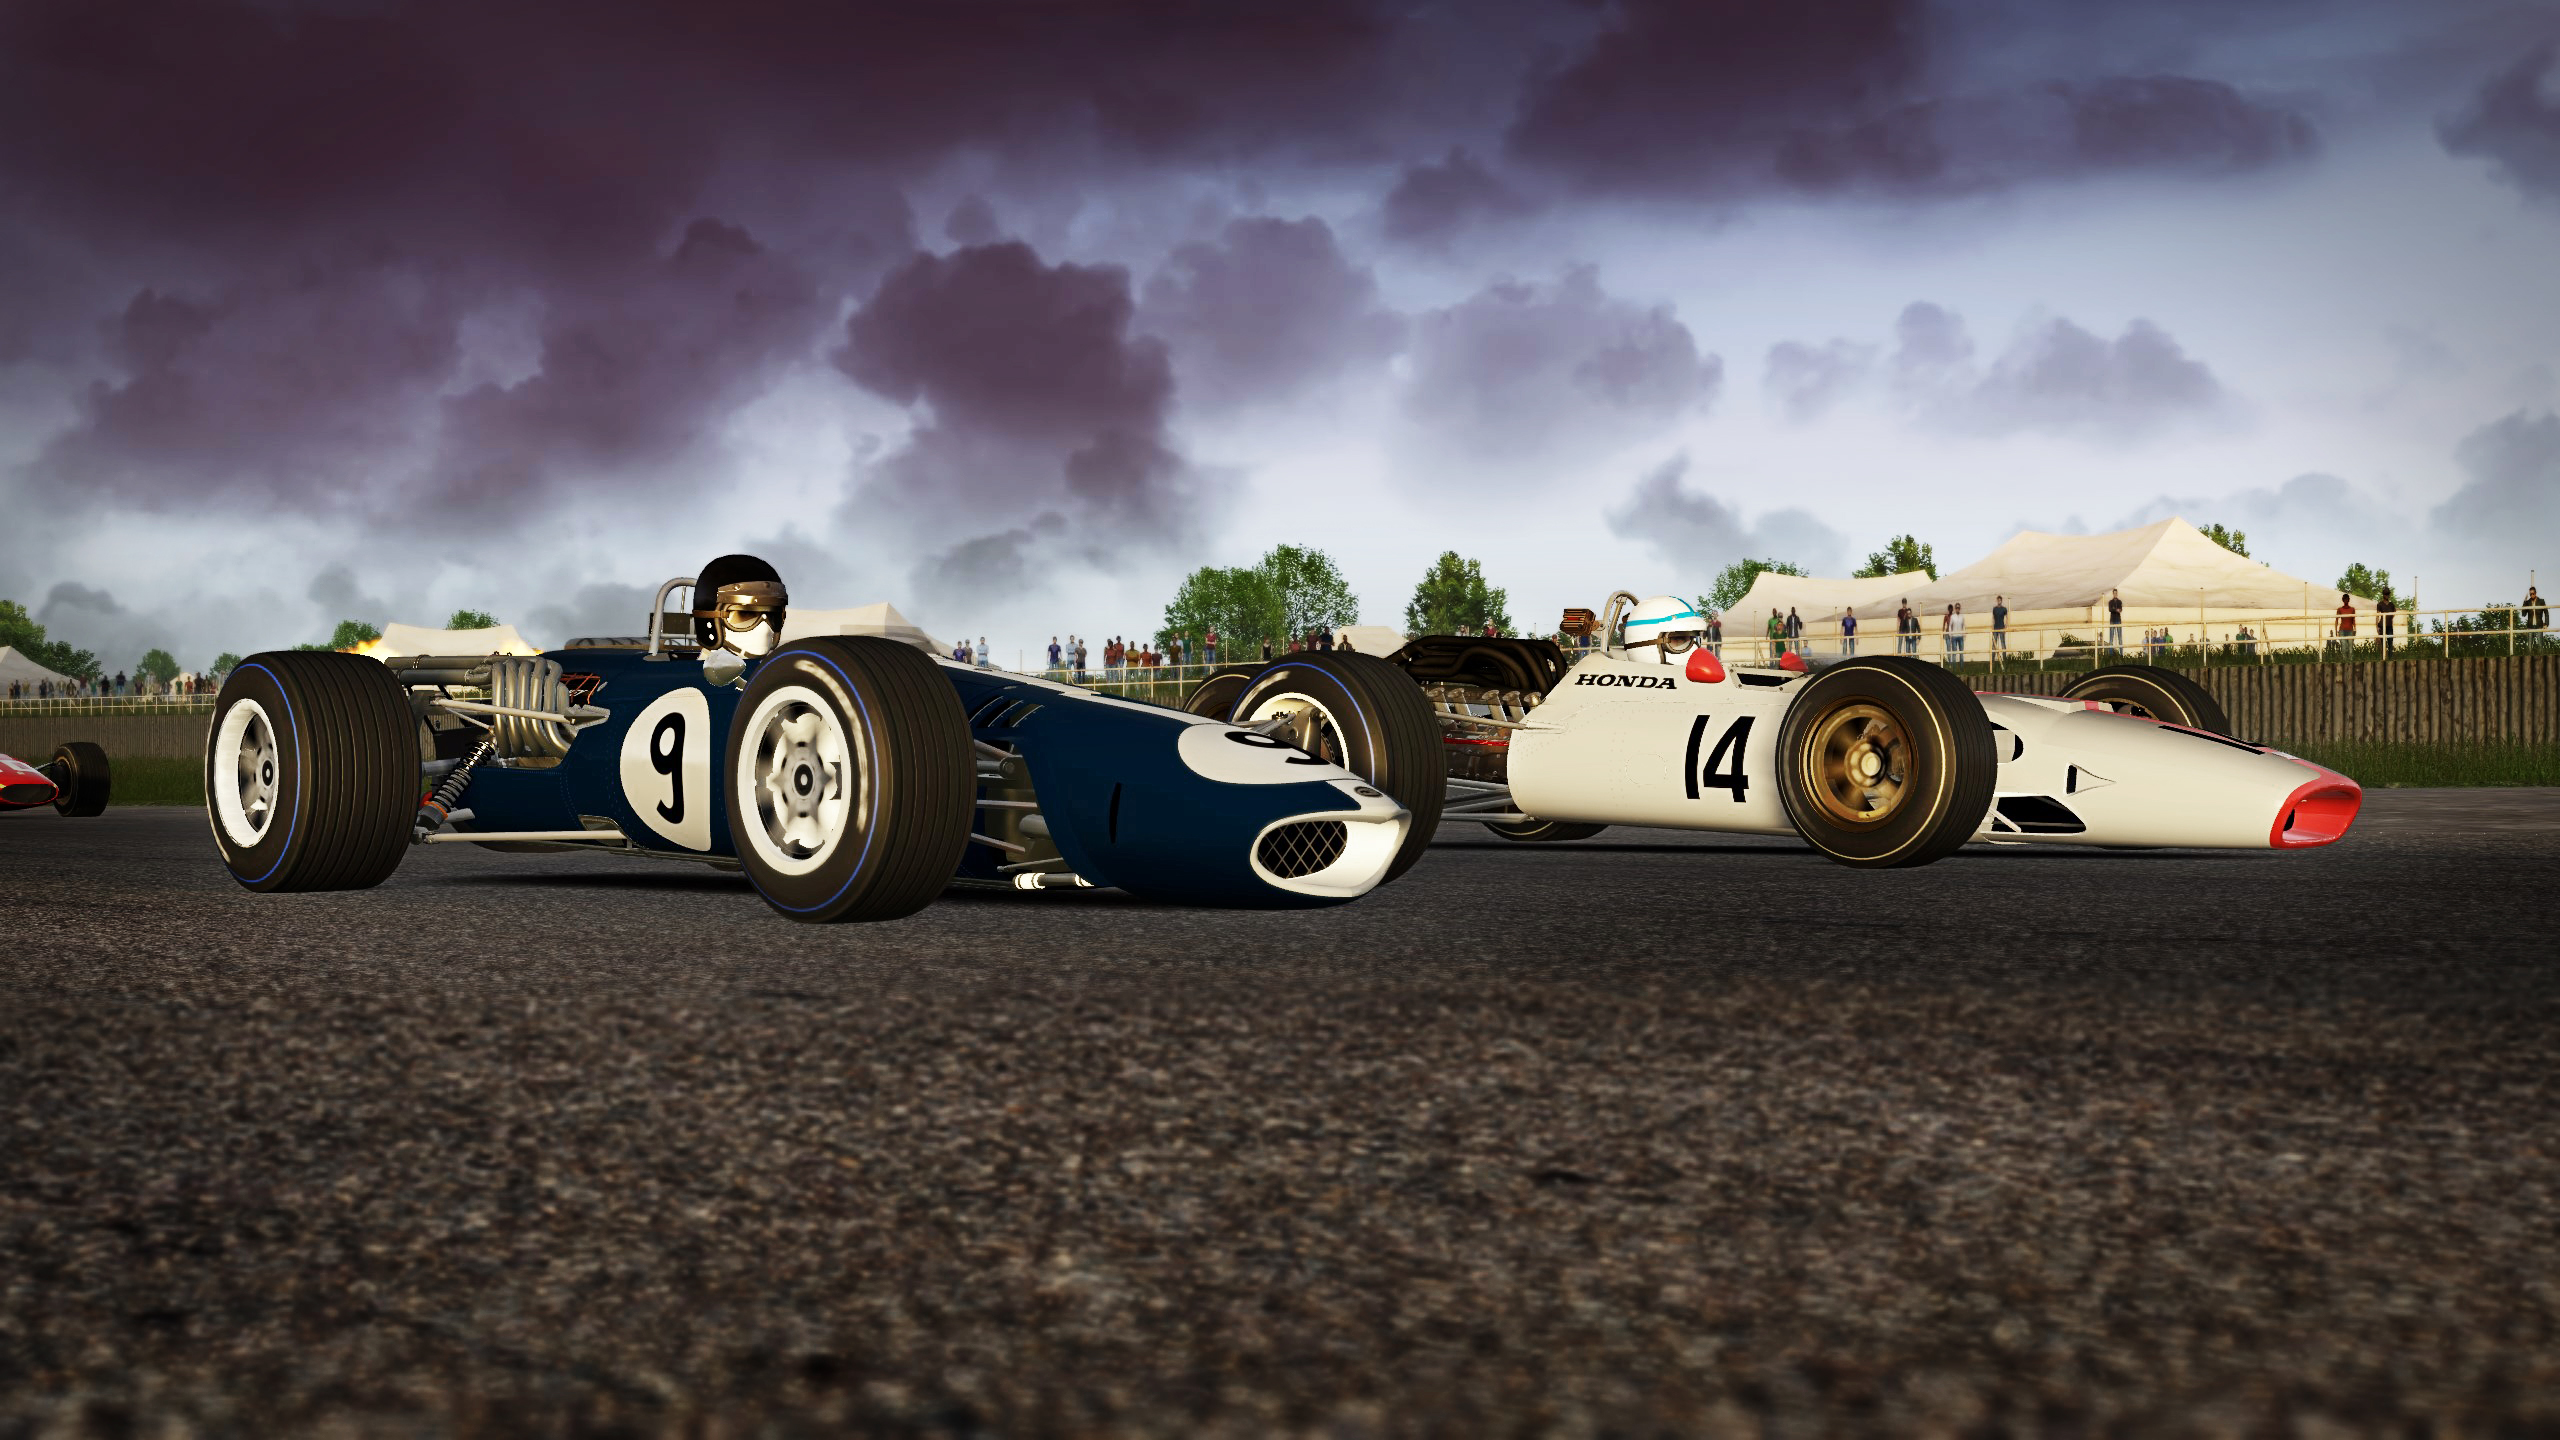 Grand Prix Legends Assetto Corsa Mod [V2.0 Preview]